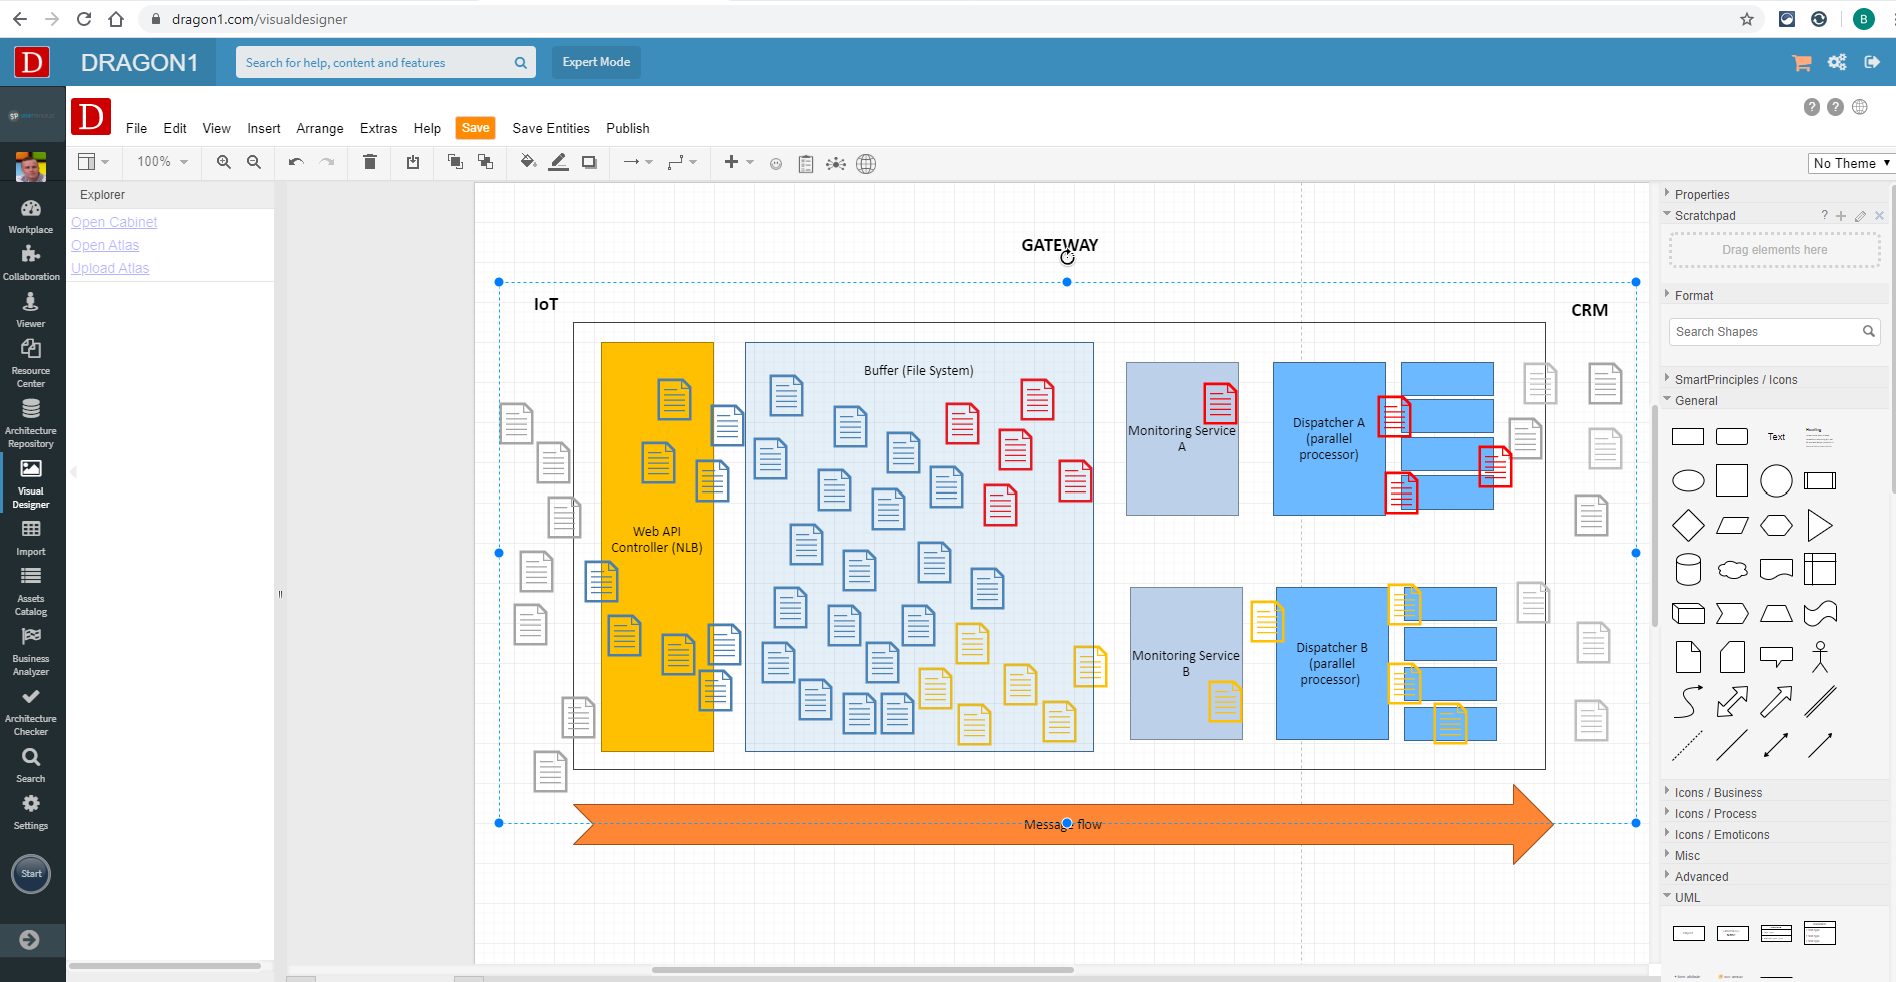 Imported Visio or PowerPoint file in the Visual Designer